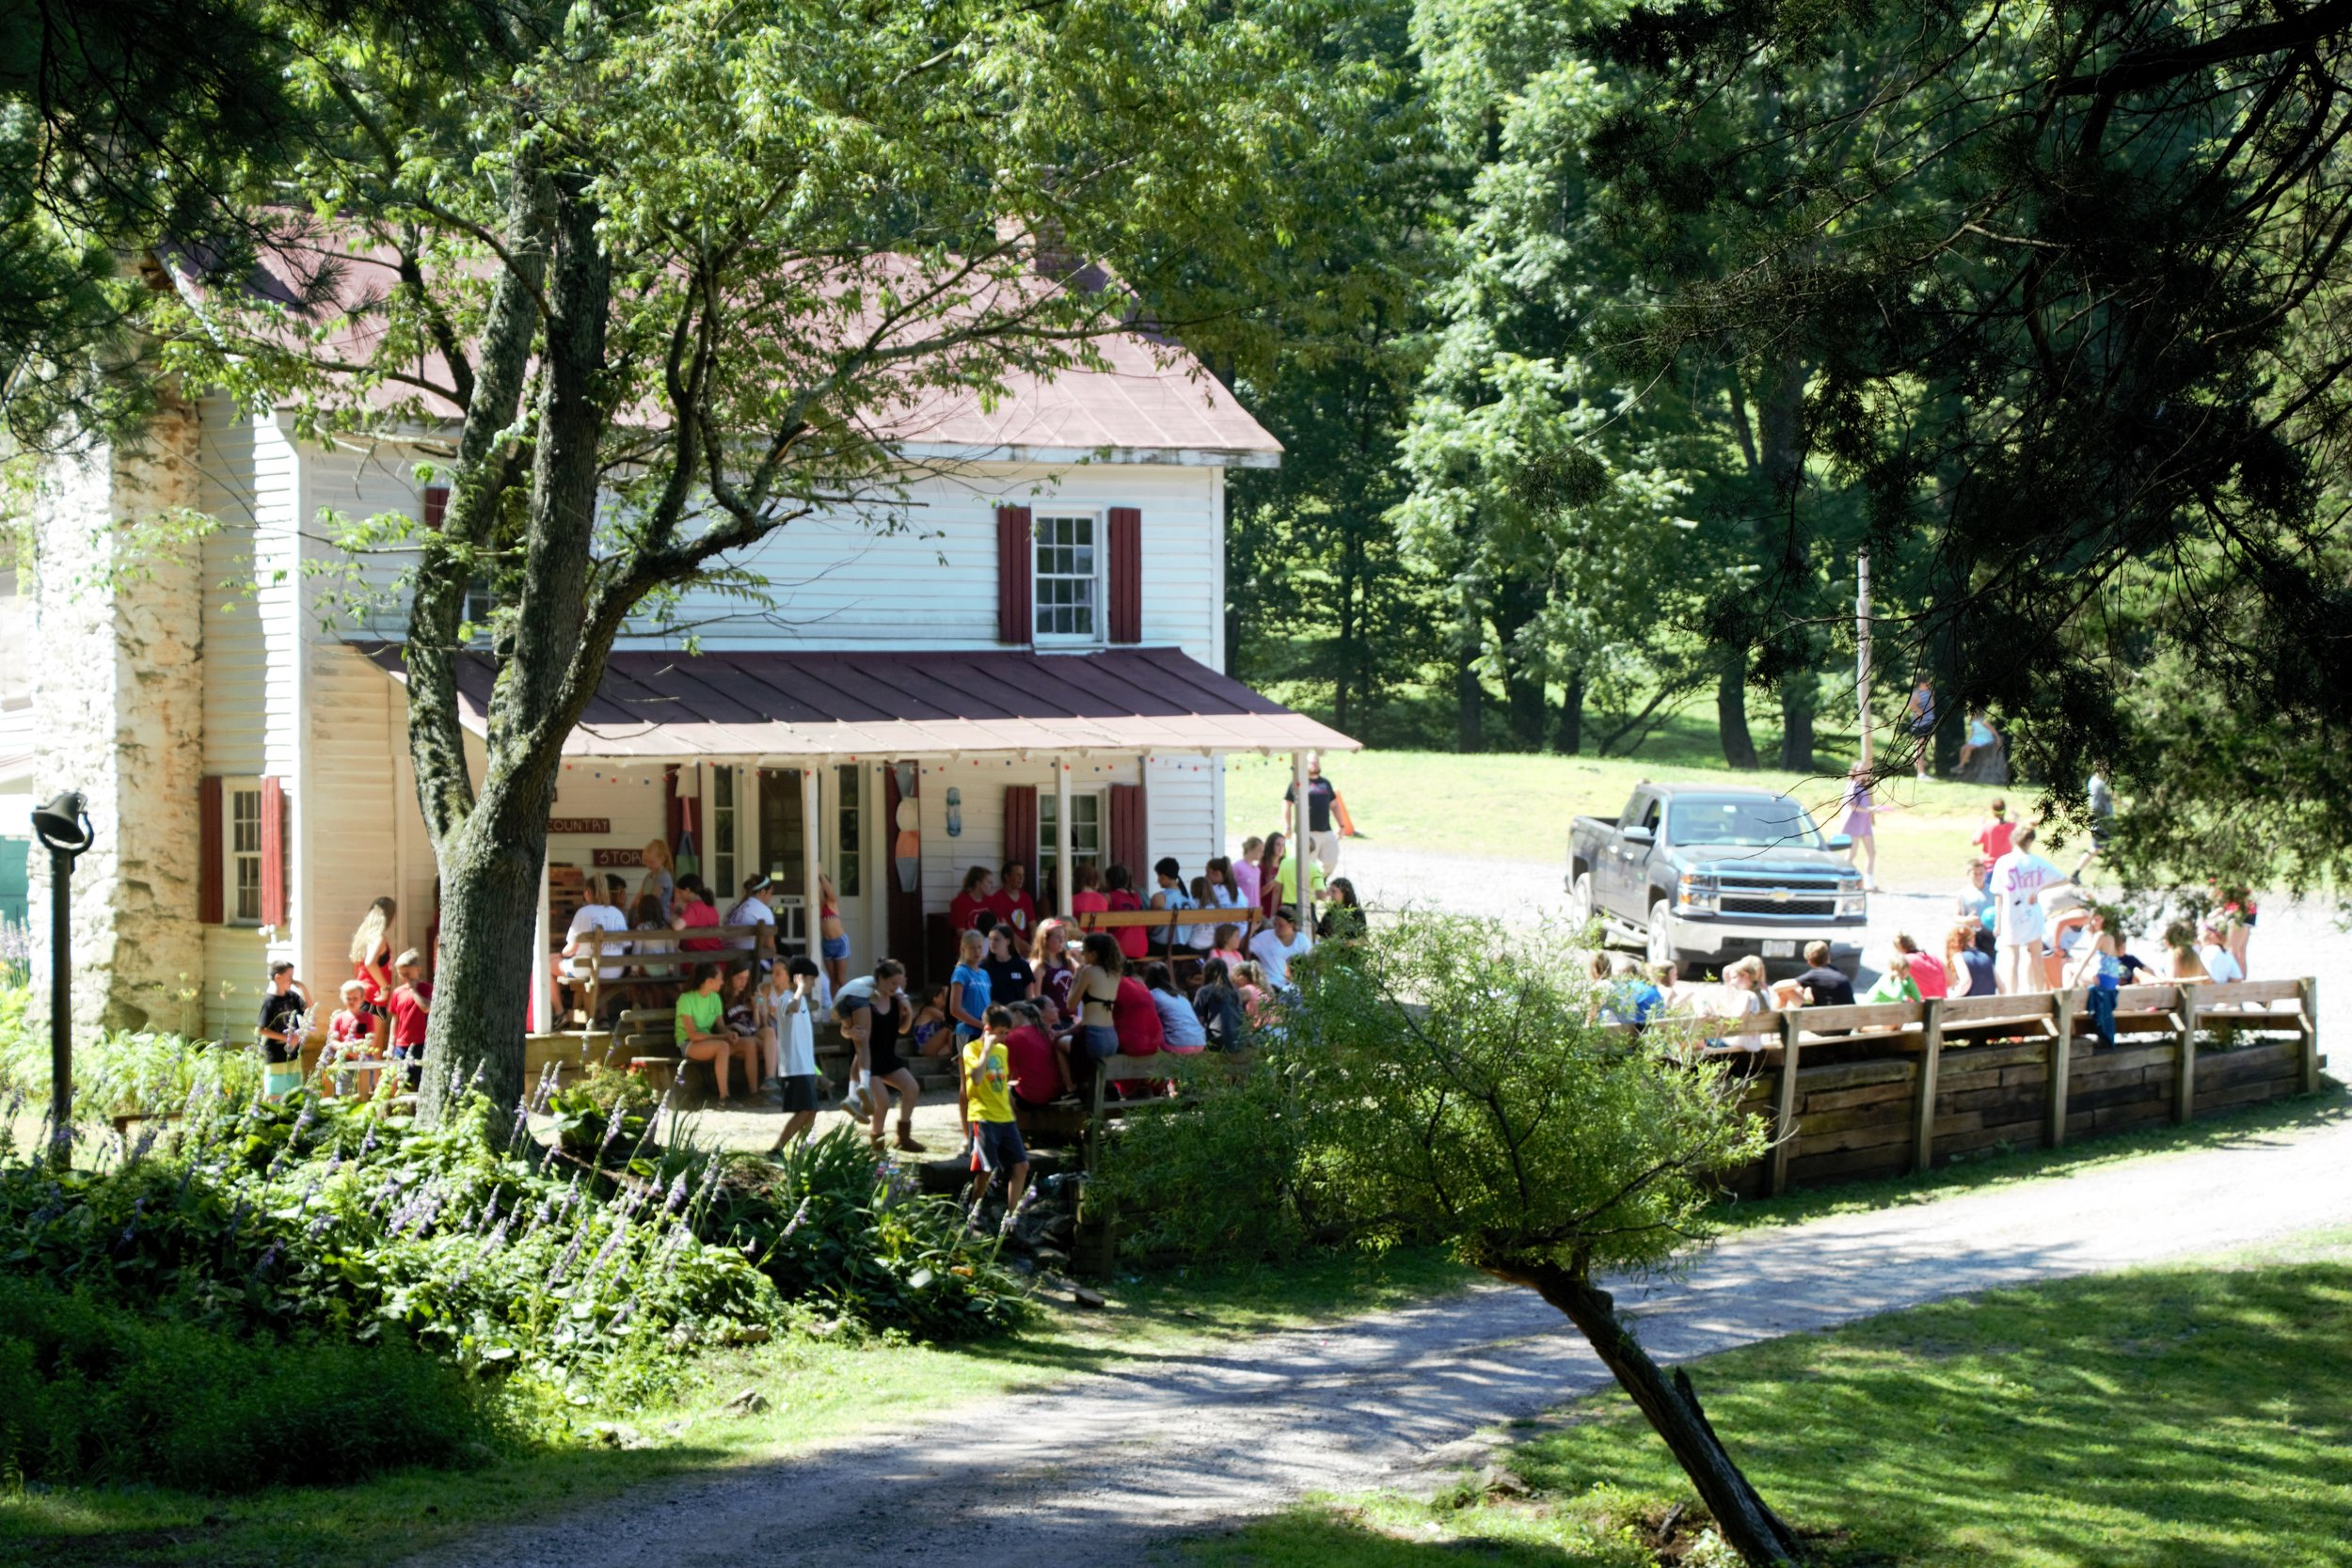 If you are interested in our offerings at the Camp Store check out our  Food + Meals!